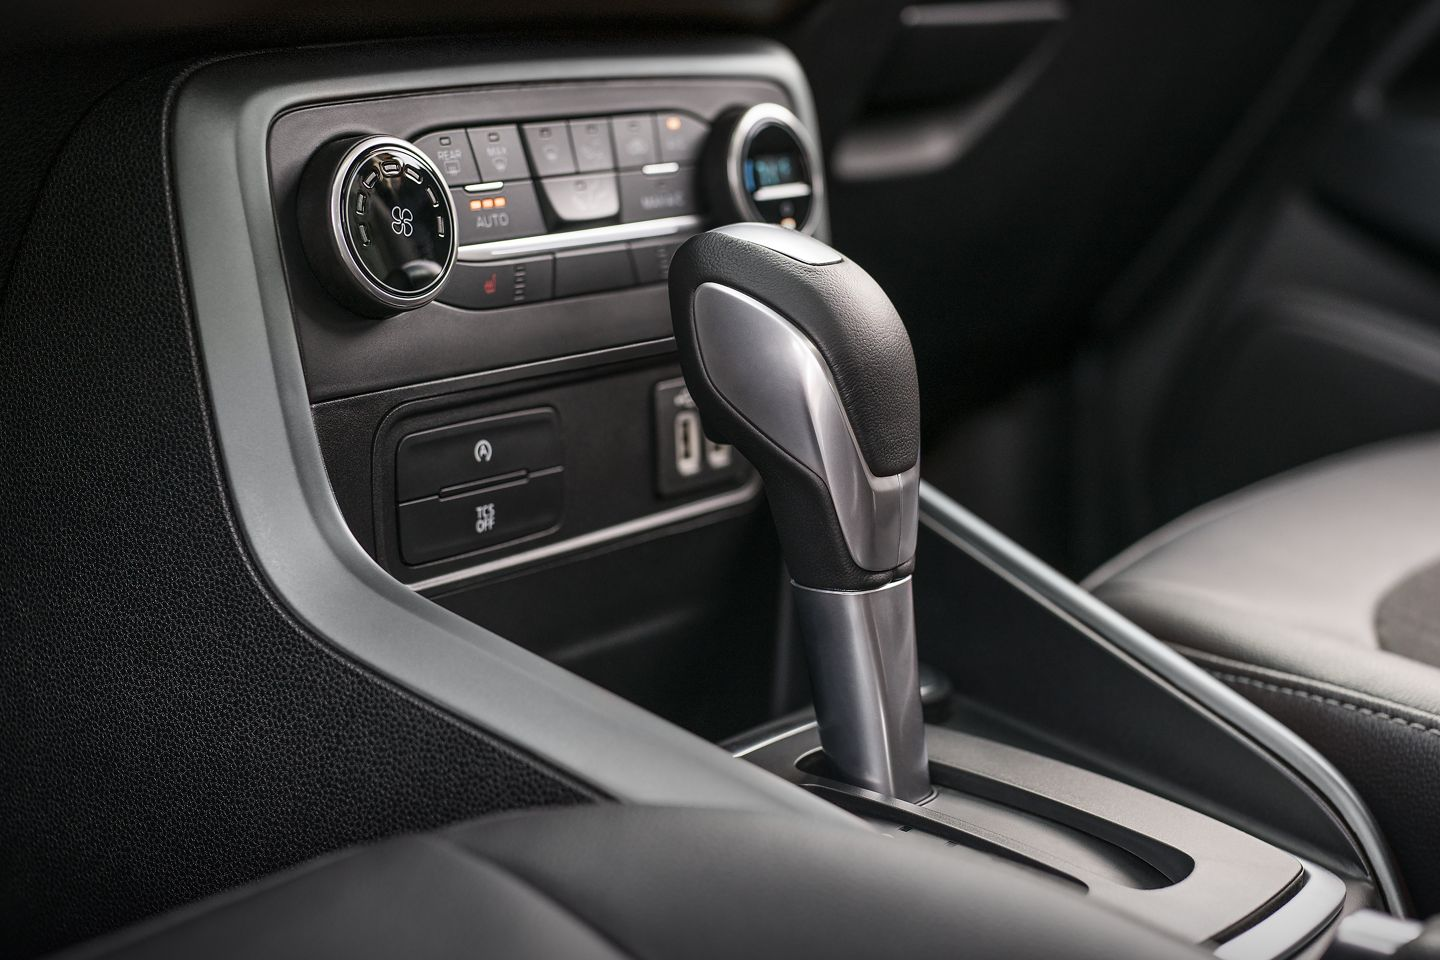 2019 Ford EcoSport Gear Shifter